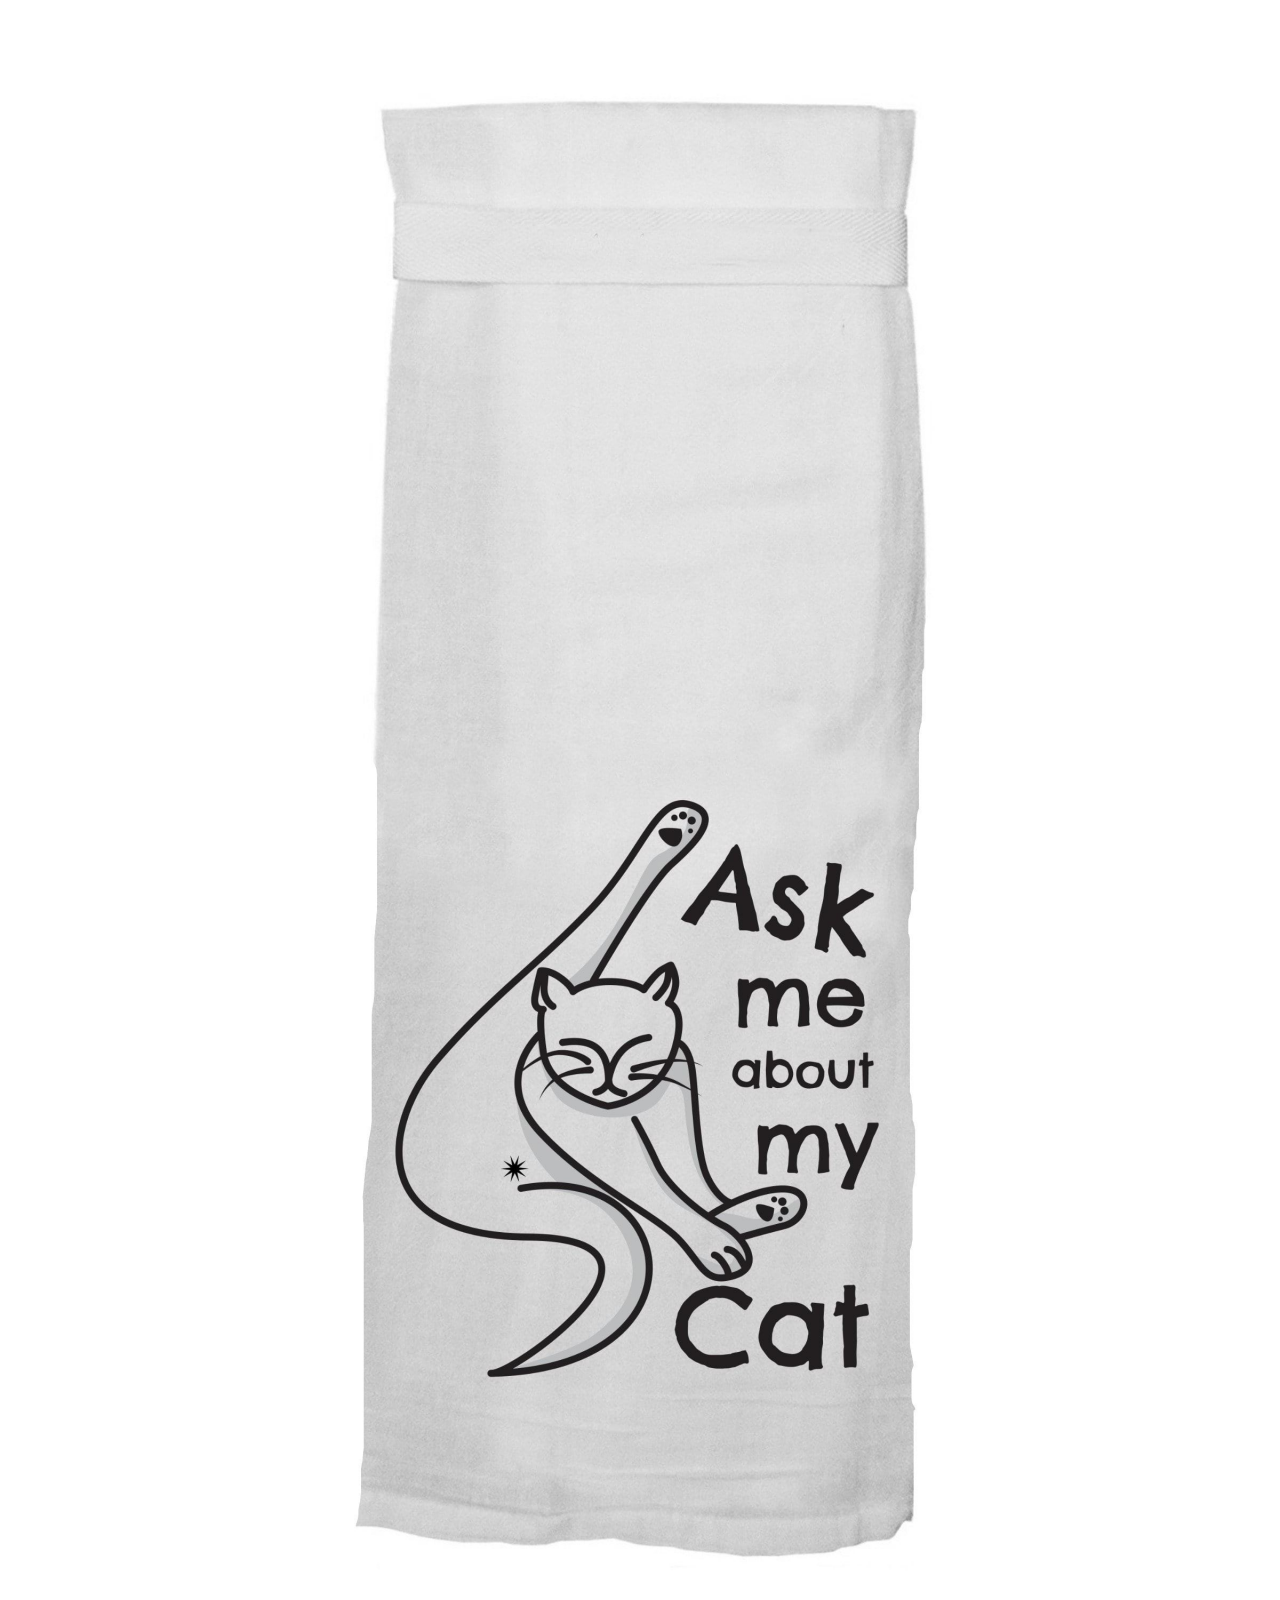 Flour Sack Towel - Ask Me About My Cat